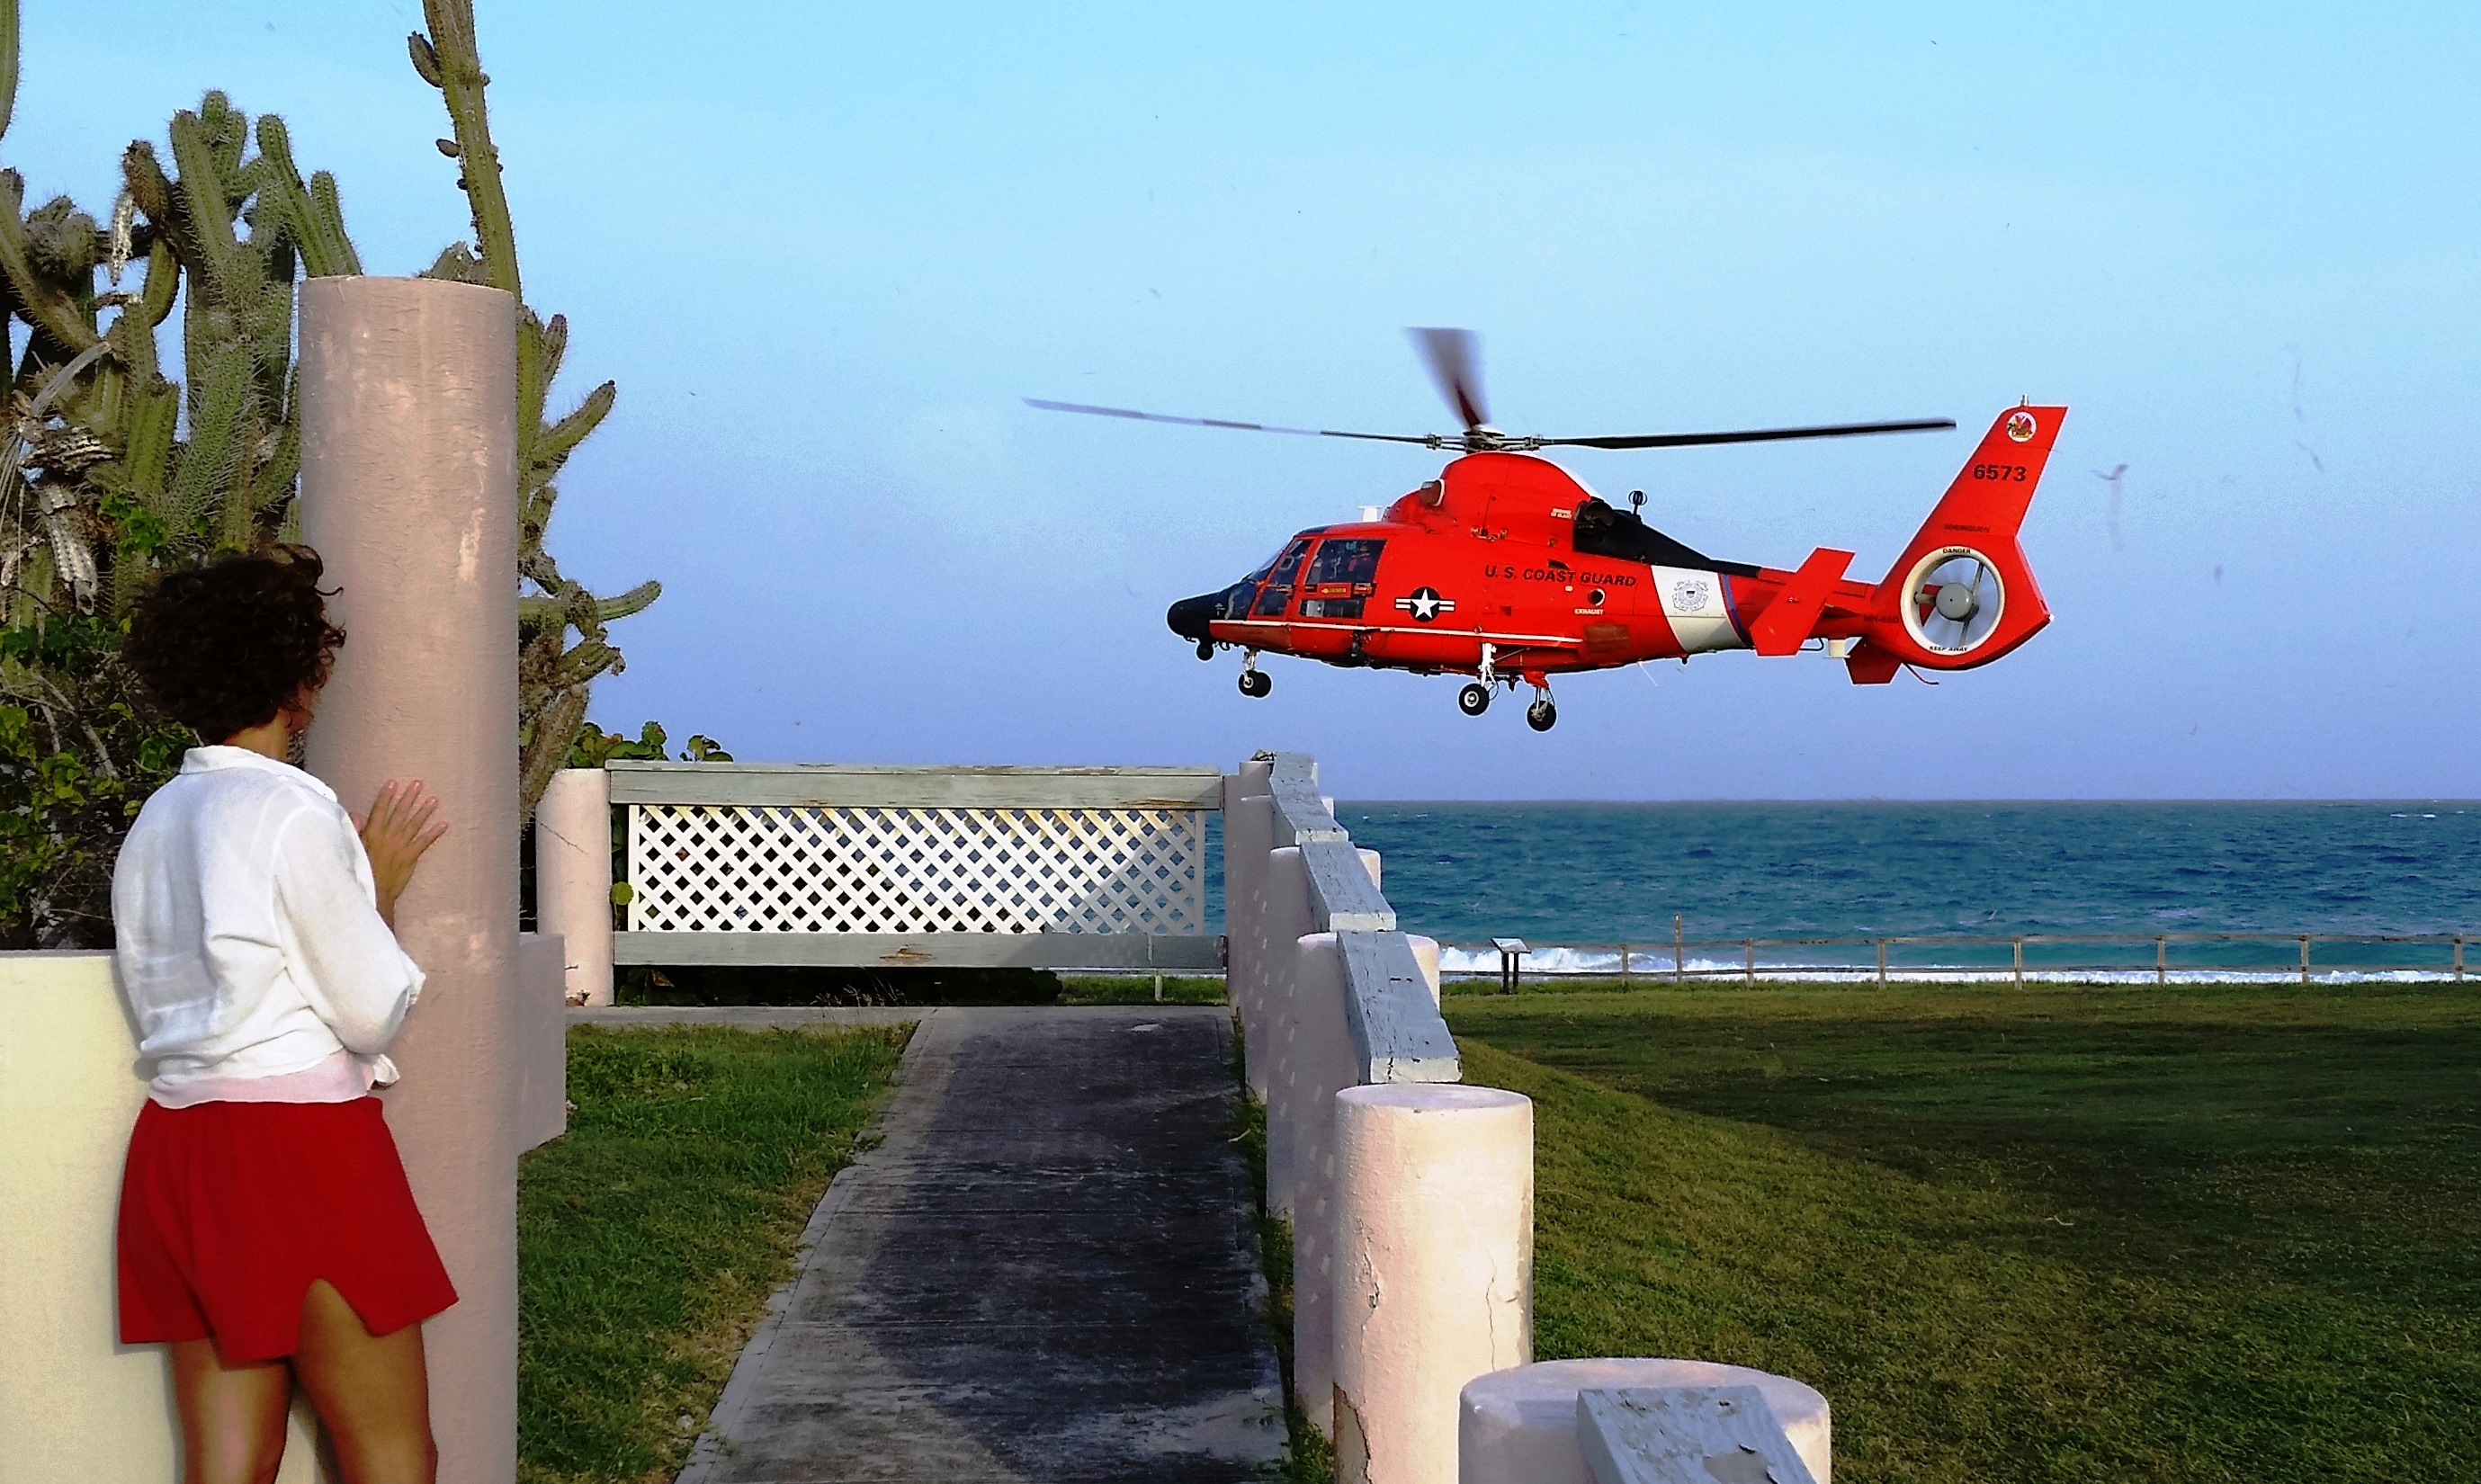 The U.S. Coast Guard helicopter coming in for a close landing